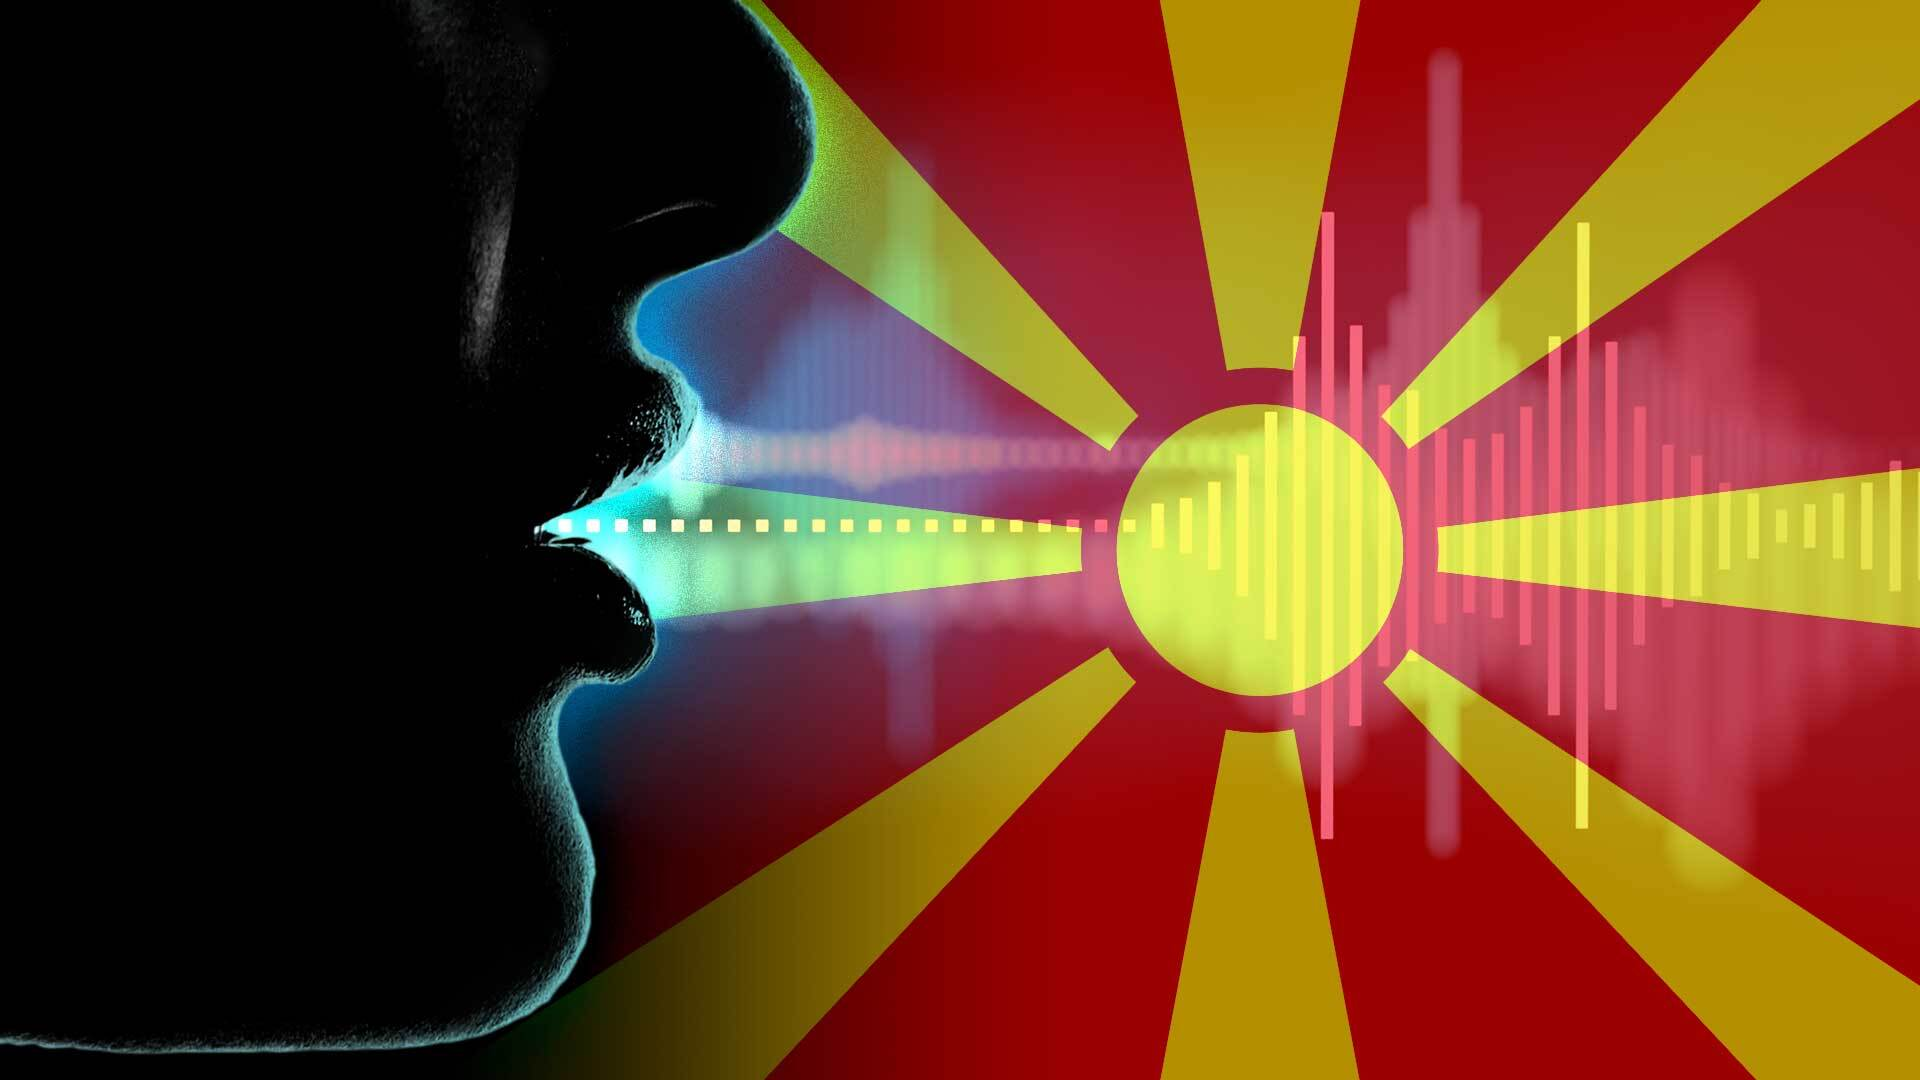 Voice-Over Services Republic of Northern Macedonia - Voquent